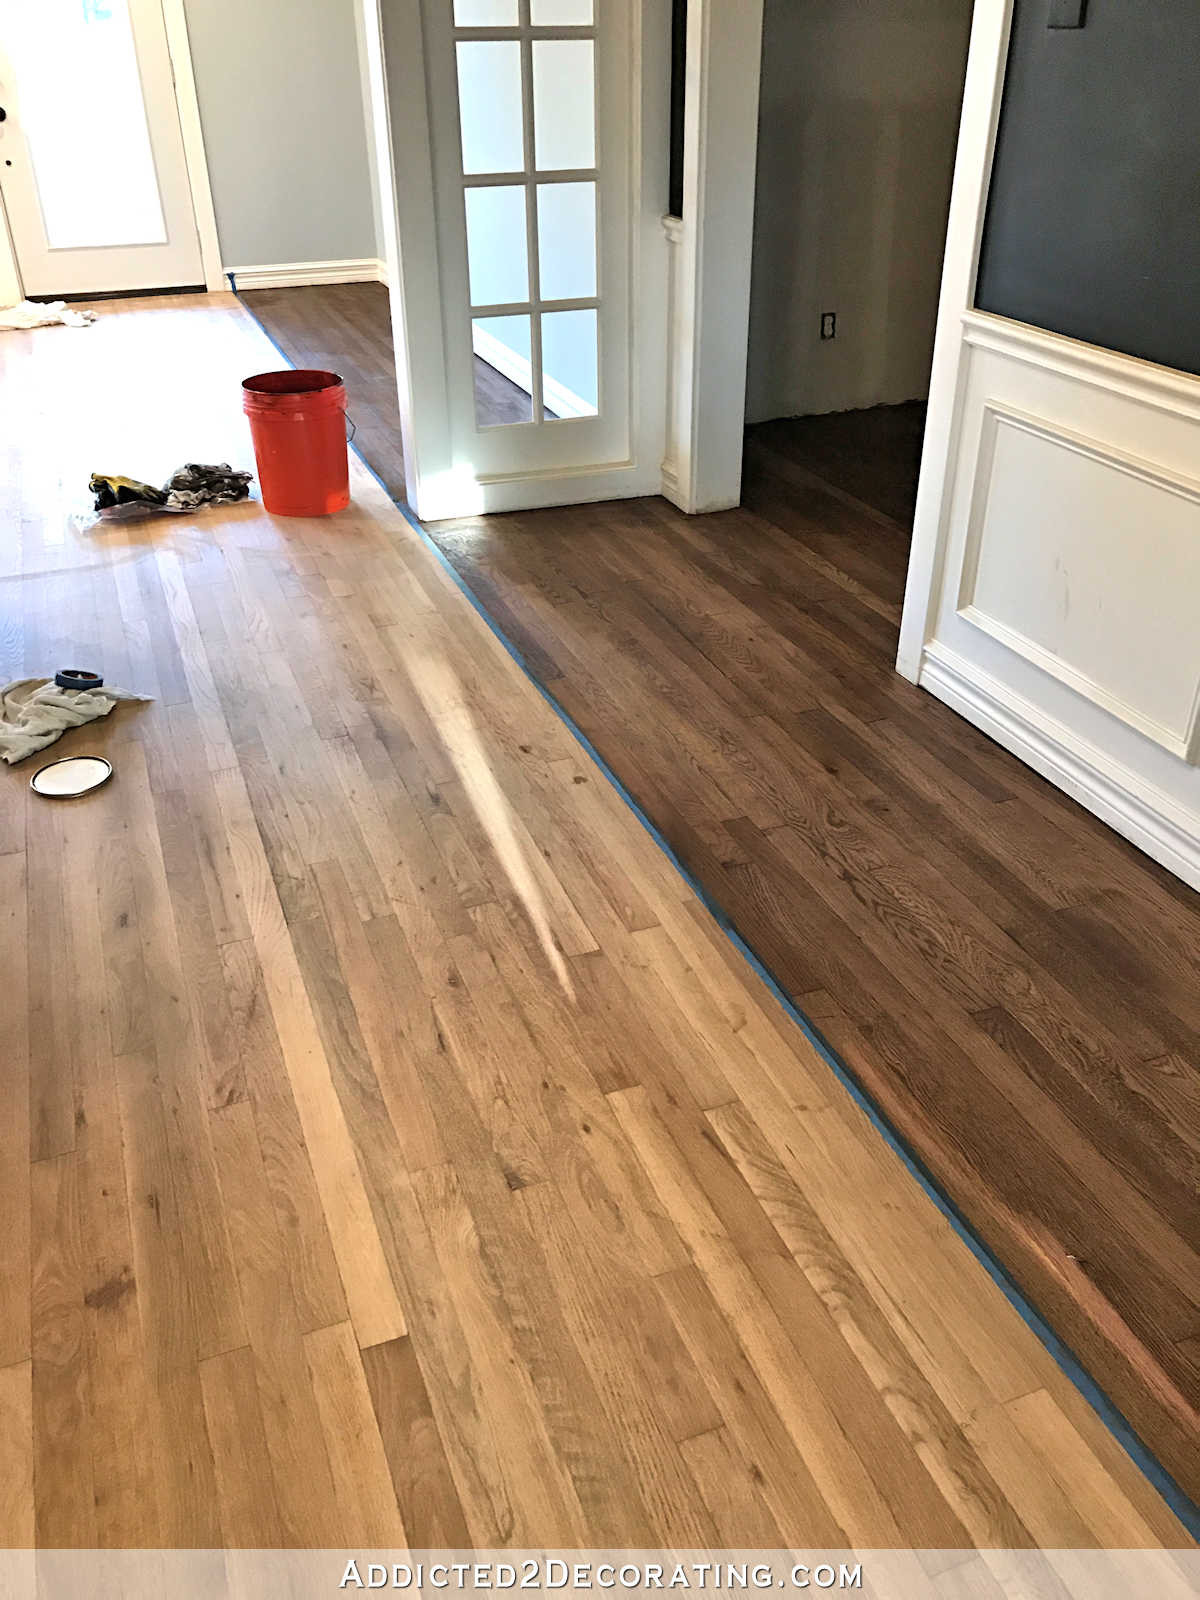 hardwood flooring types pets of adventures in staining my red oak hardwood floors products process with regard to staining red oak hardwood floors 6 stain on partial floor in entryway and music